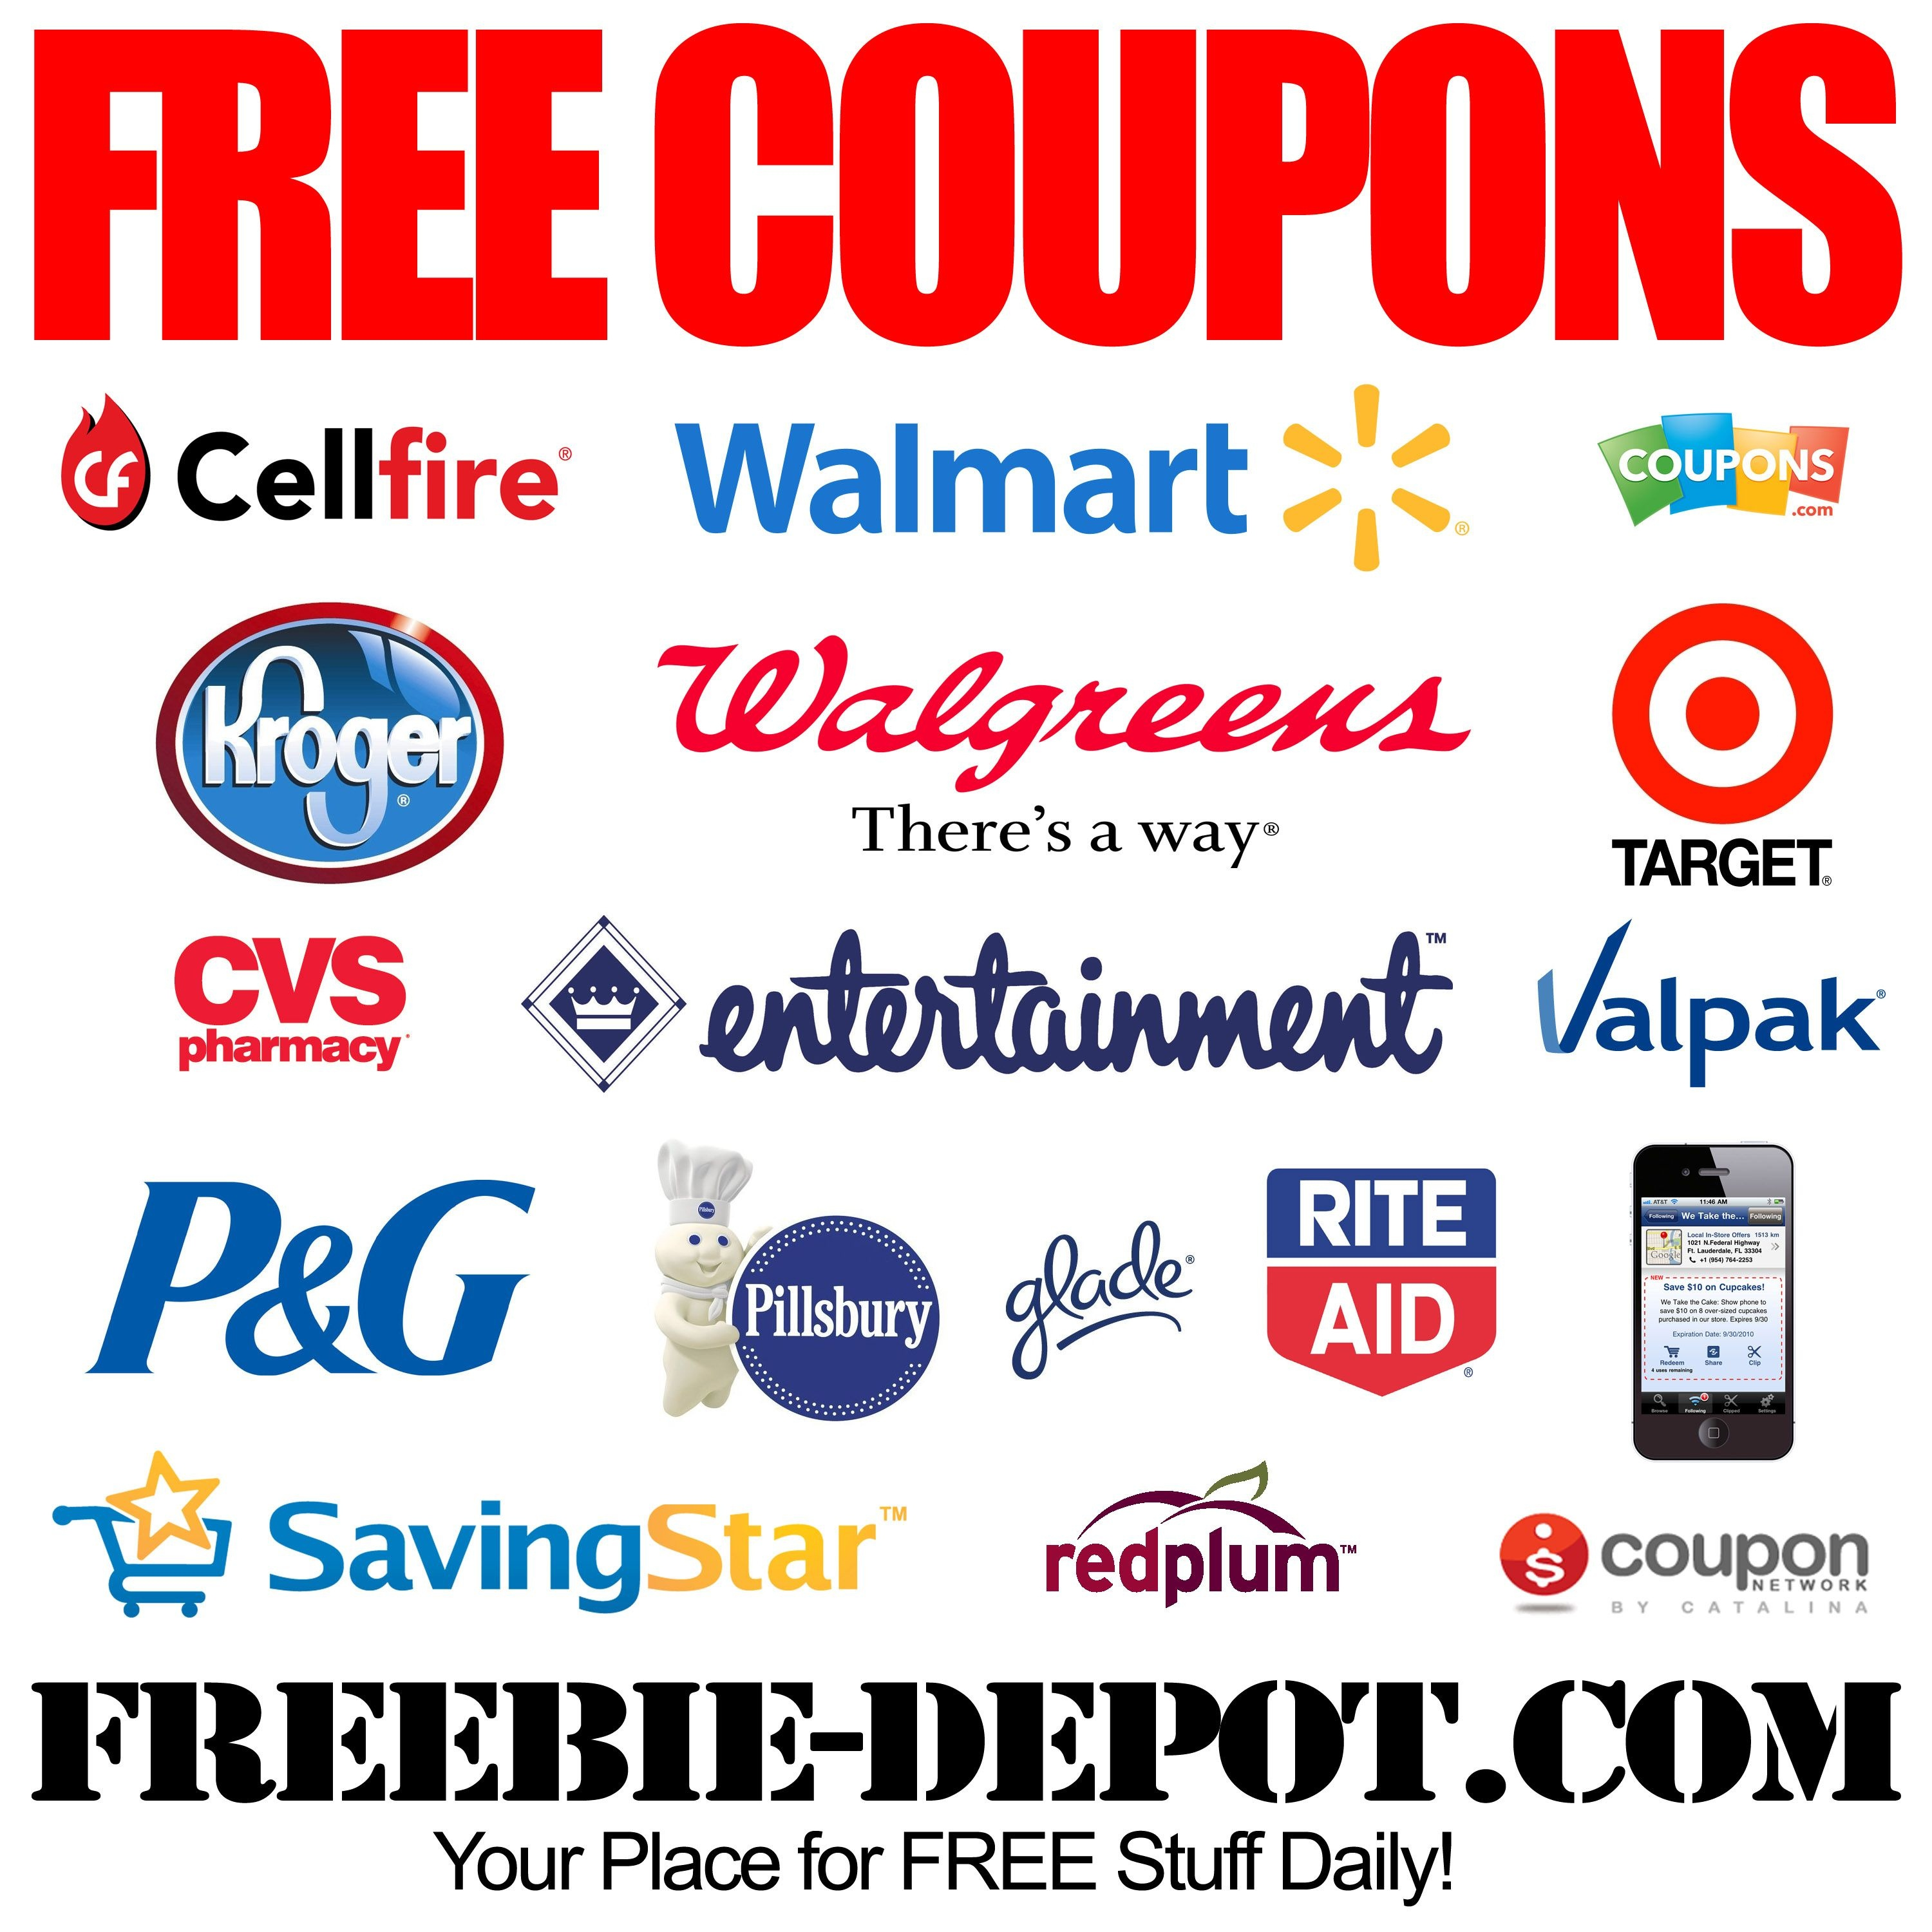 Free Coupons - Free Printable Coupons - Free Grocery Coupons - Free Printable Coupons Without Downloading Or Registering